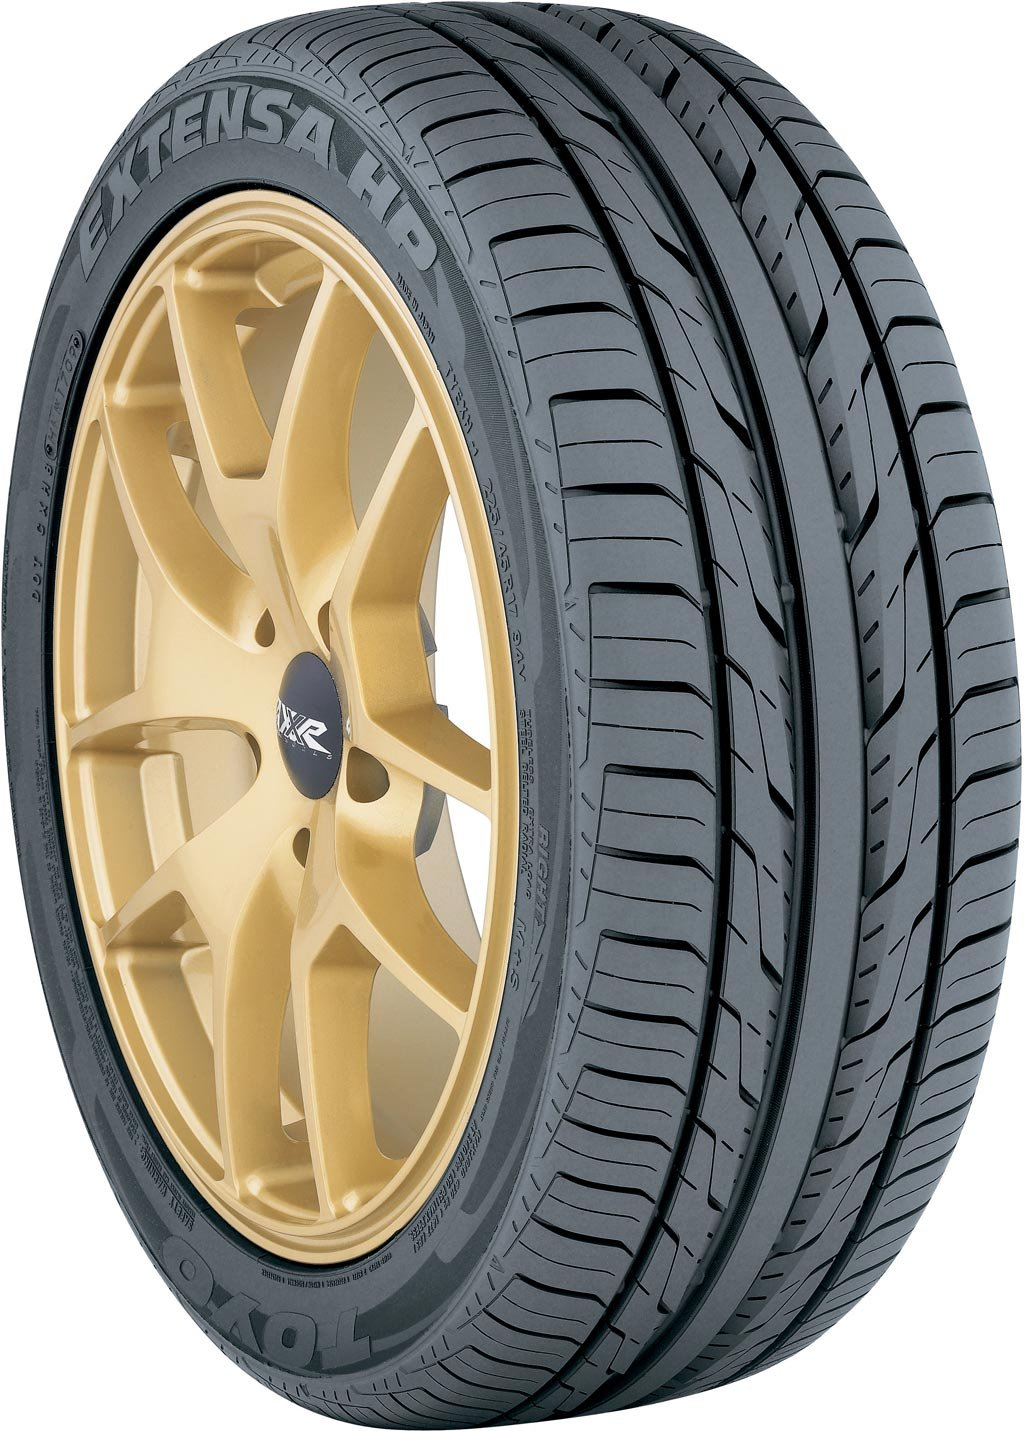 Toyo Extensa HP Performance Radial Tire - 245/40R17 95W by Toyo Tires (Image #2)